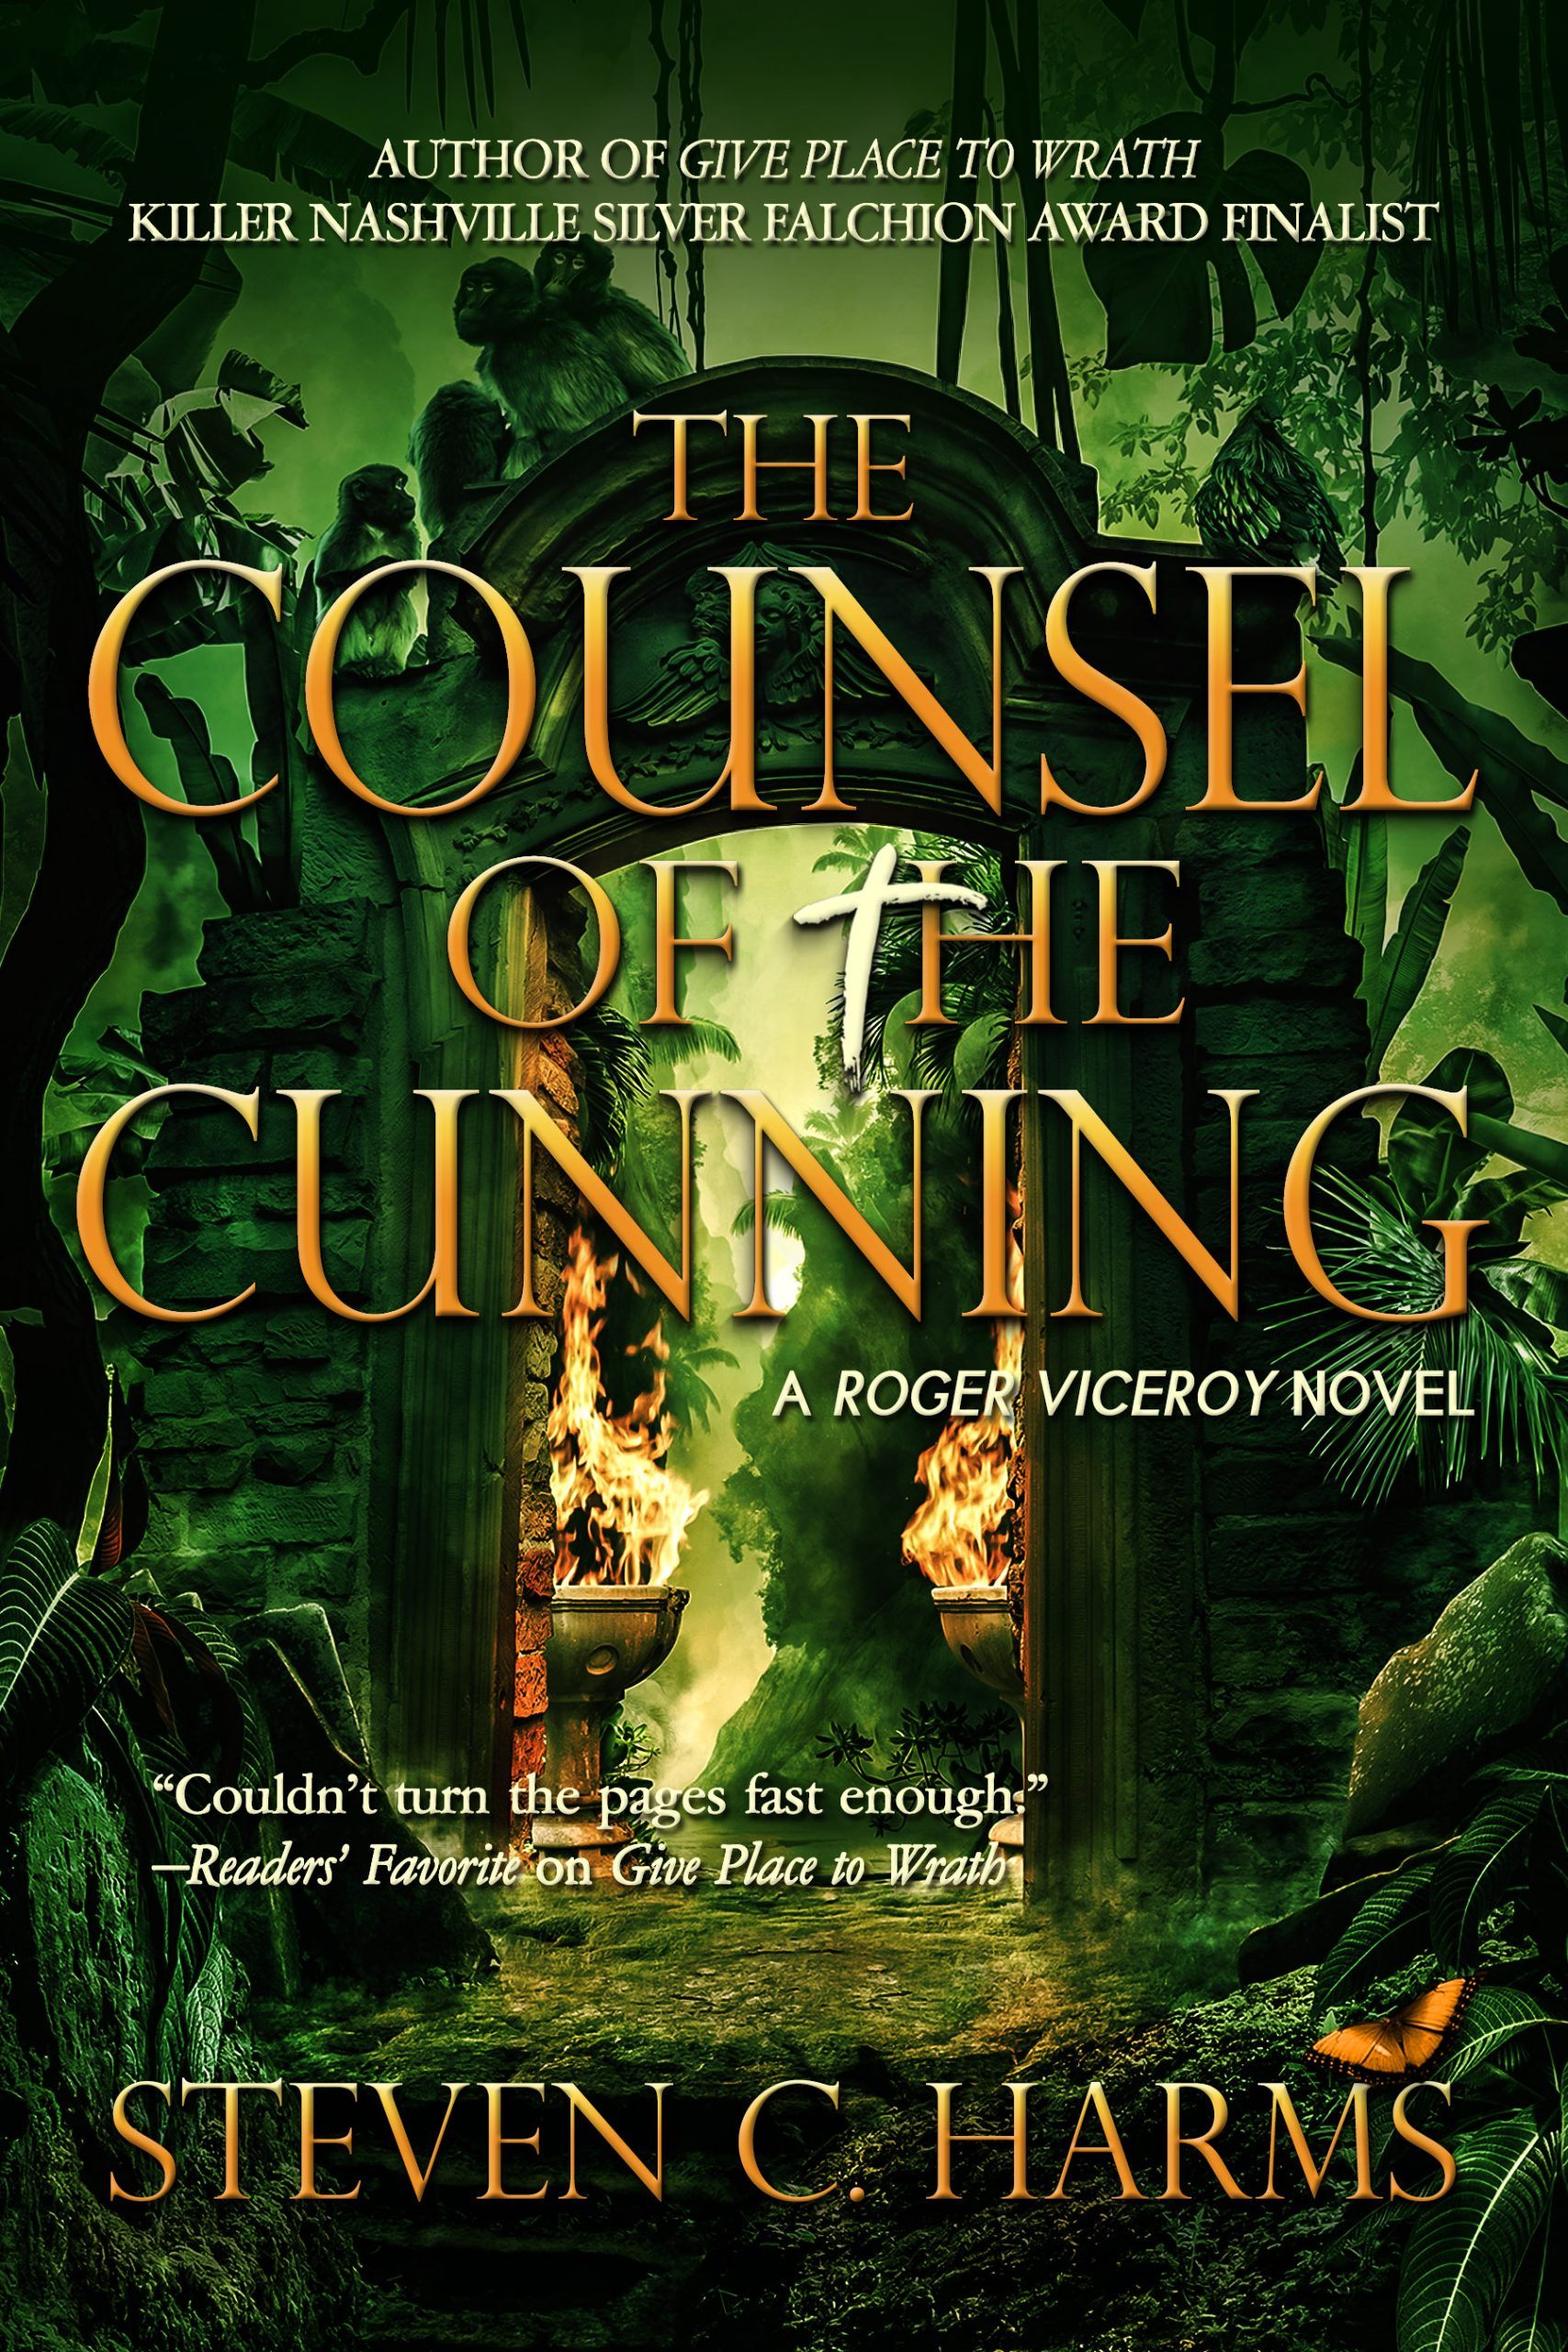 The Counsel of the Cunning by Steven C. Harms